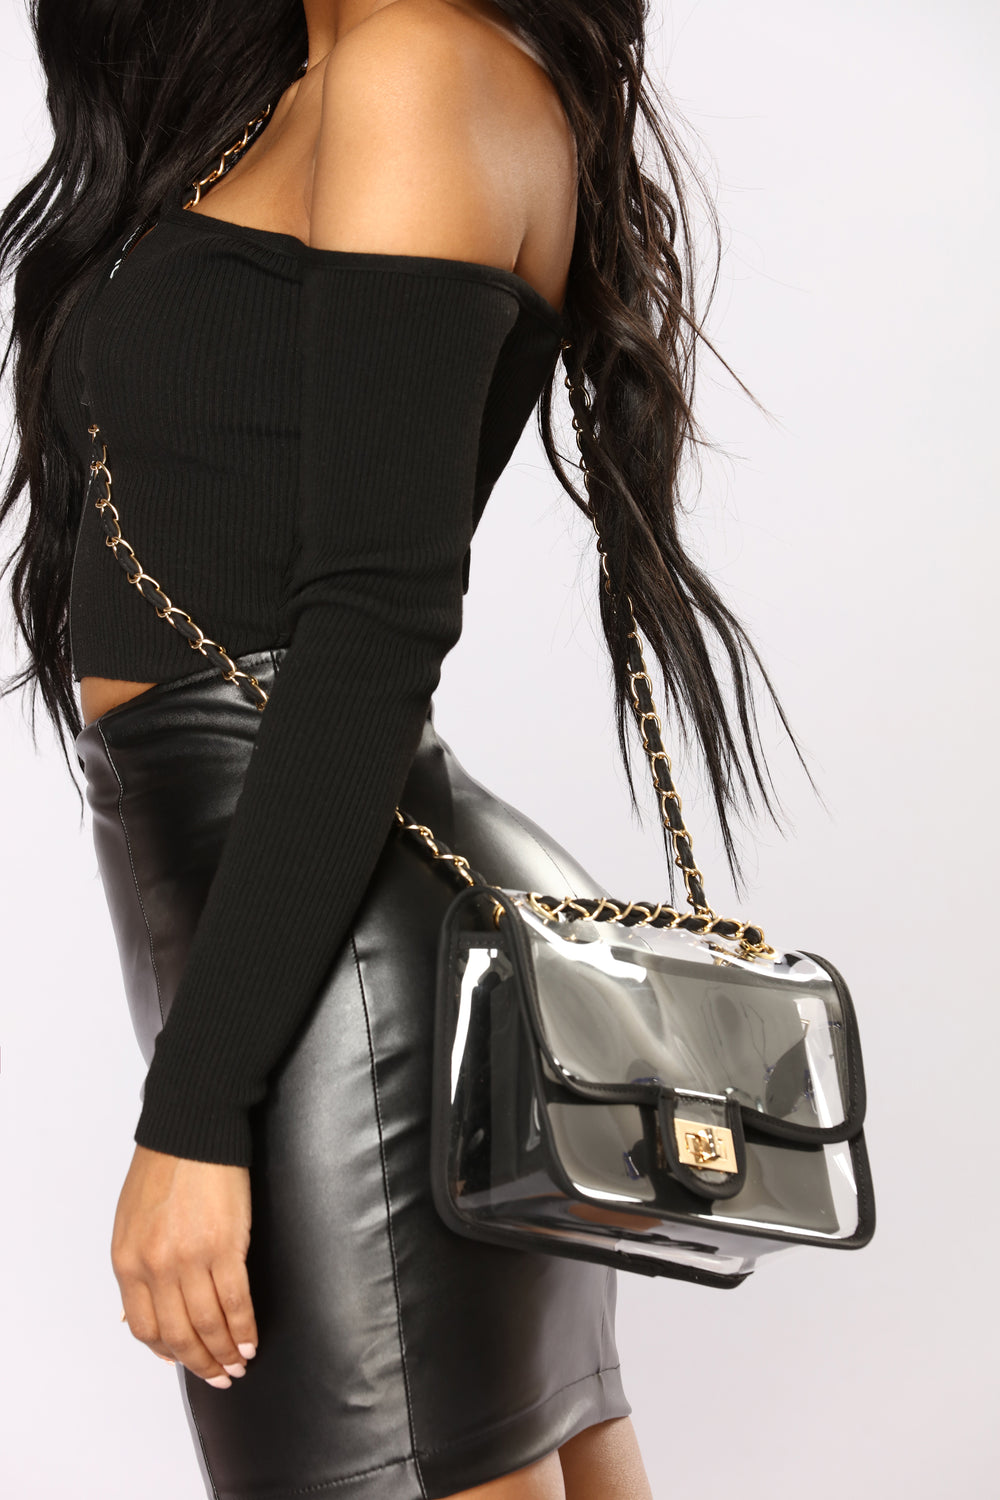 Loud And Clear Crossbody Bag - Black